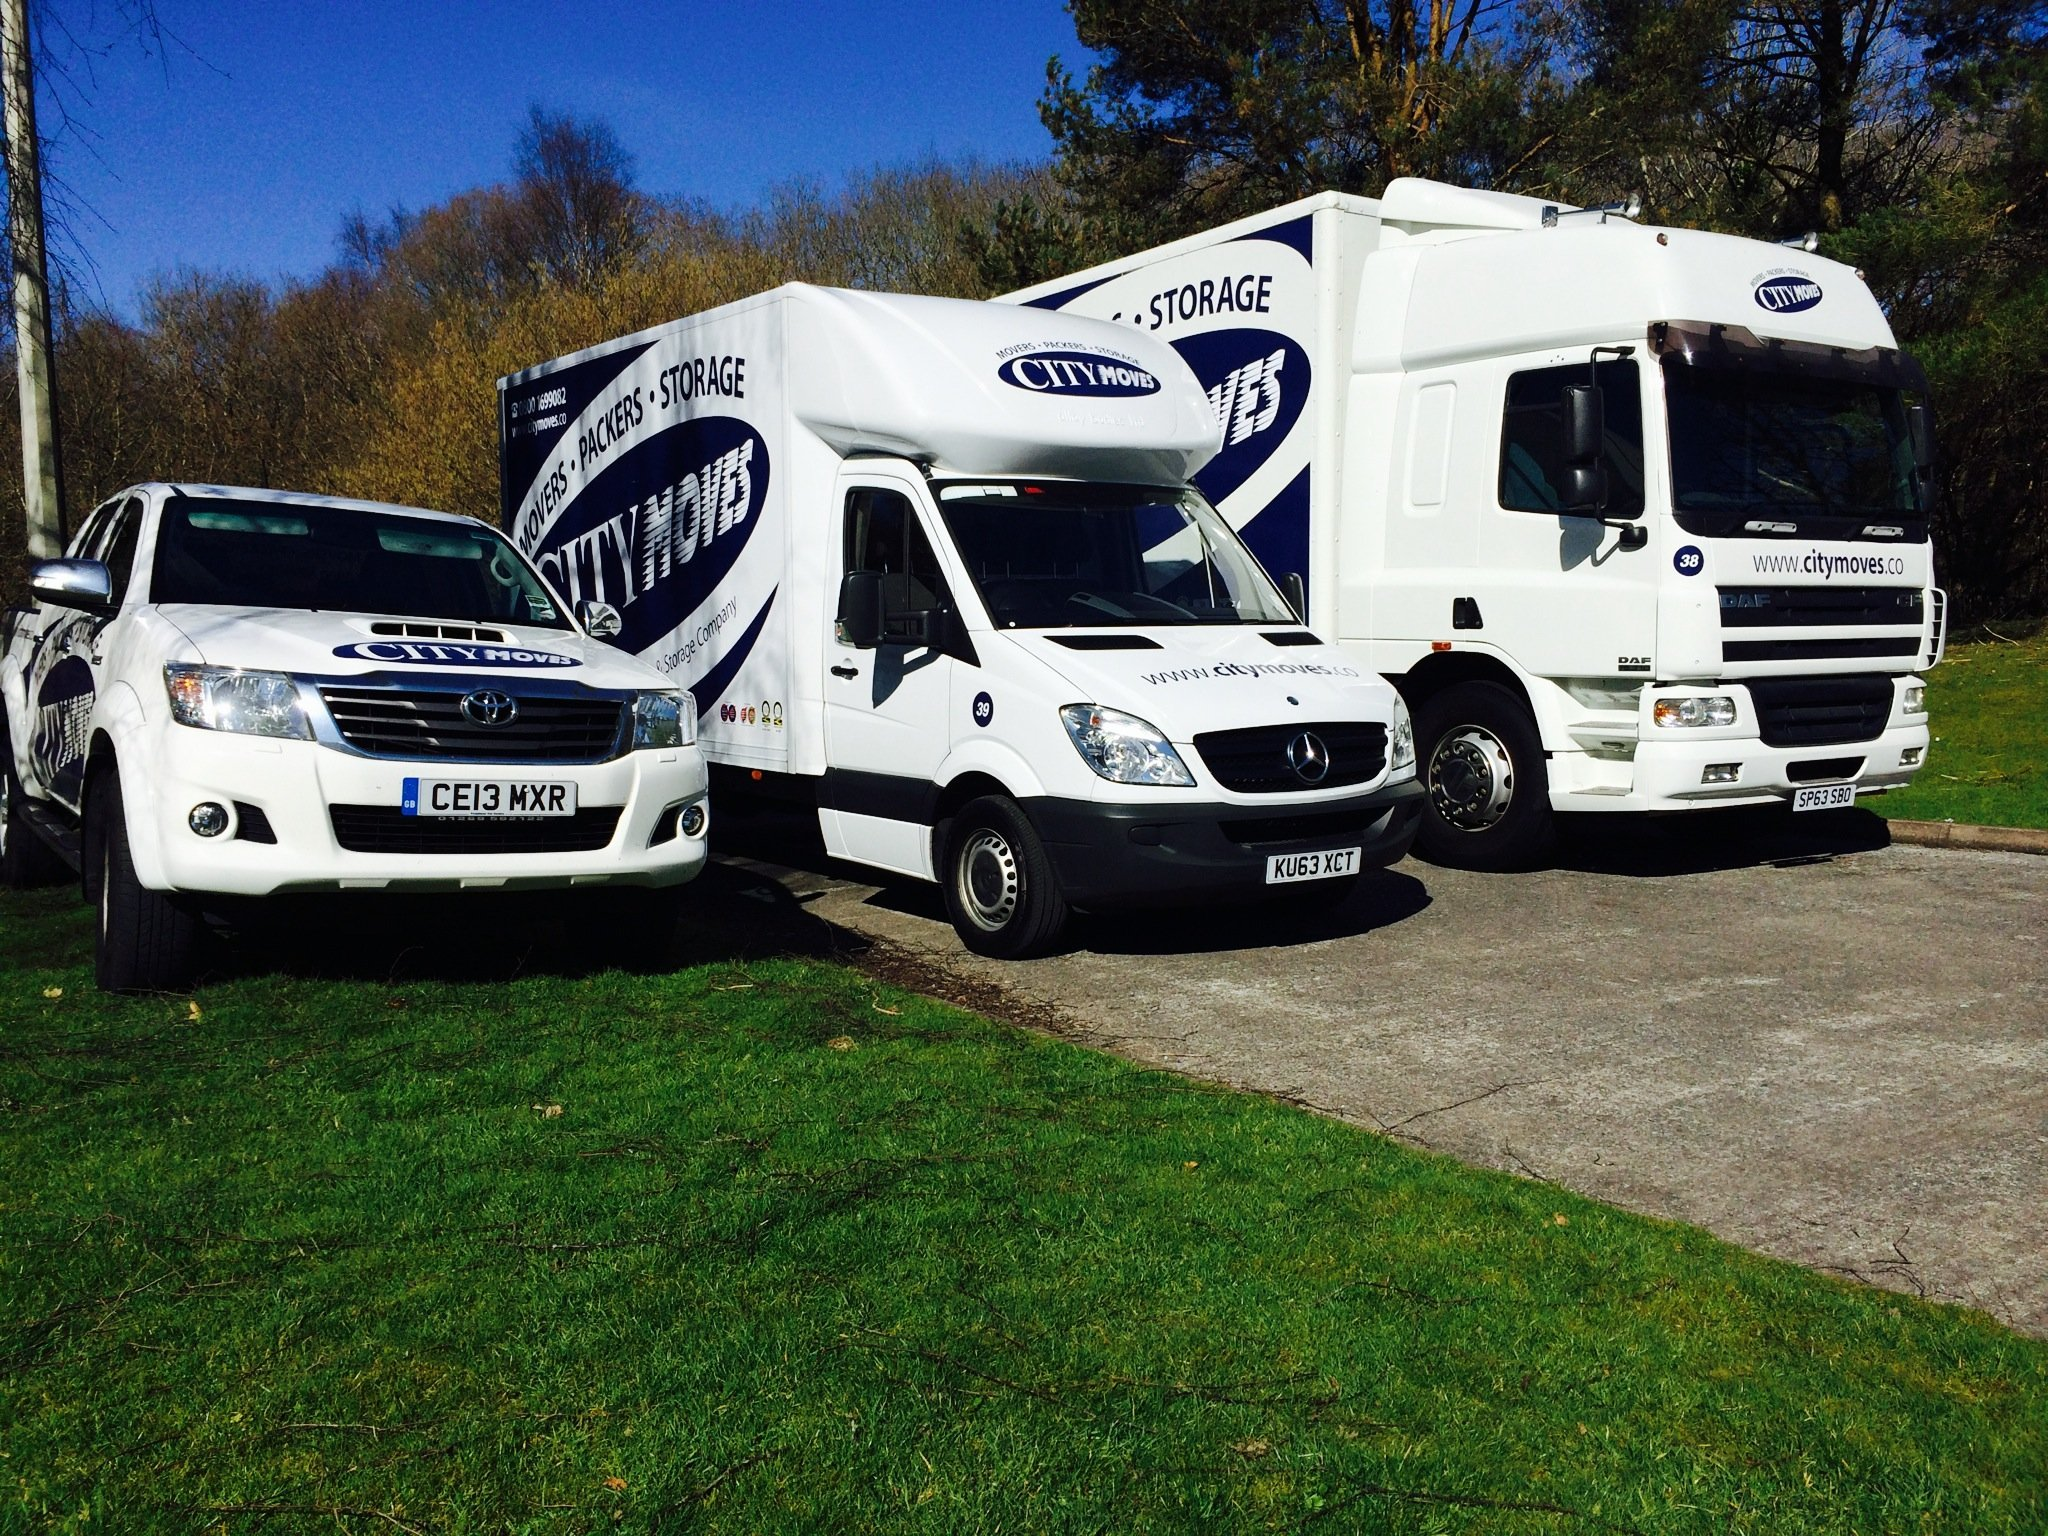 removal fleet - national removals - removal lorry - moving in the uk